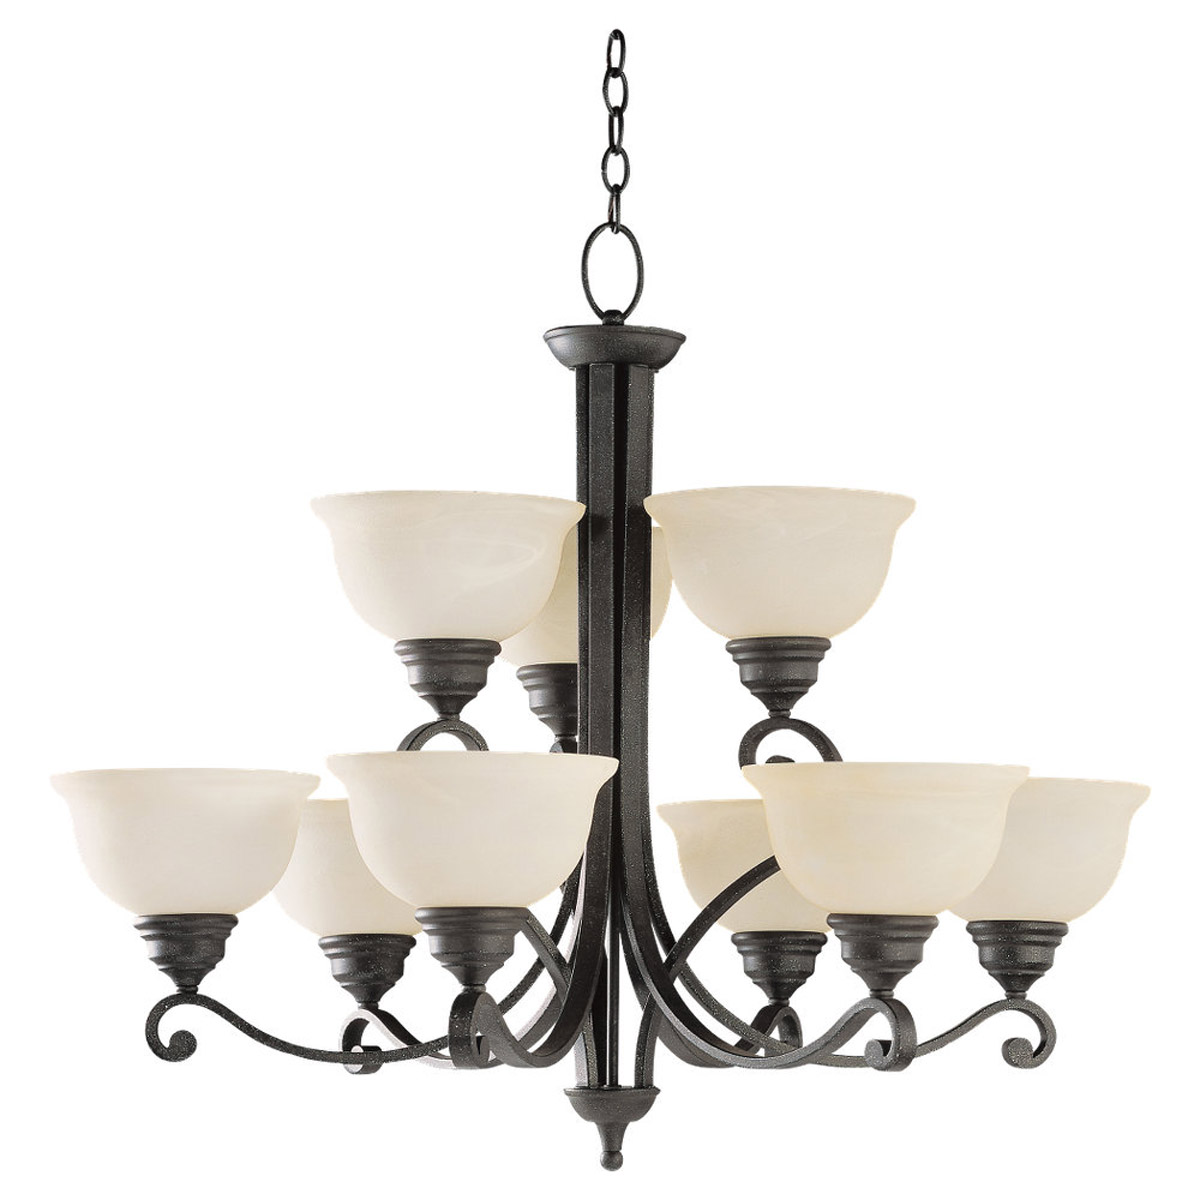 Sea Gull Lighting Serenity 9 Light Chandelier in Weathered Iron 31192-07